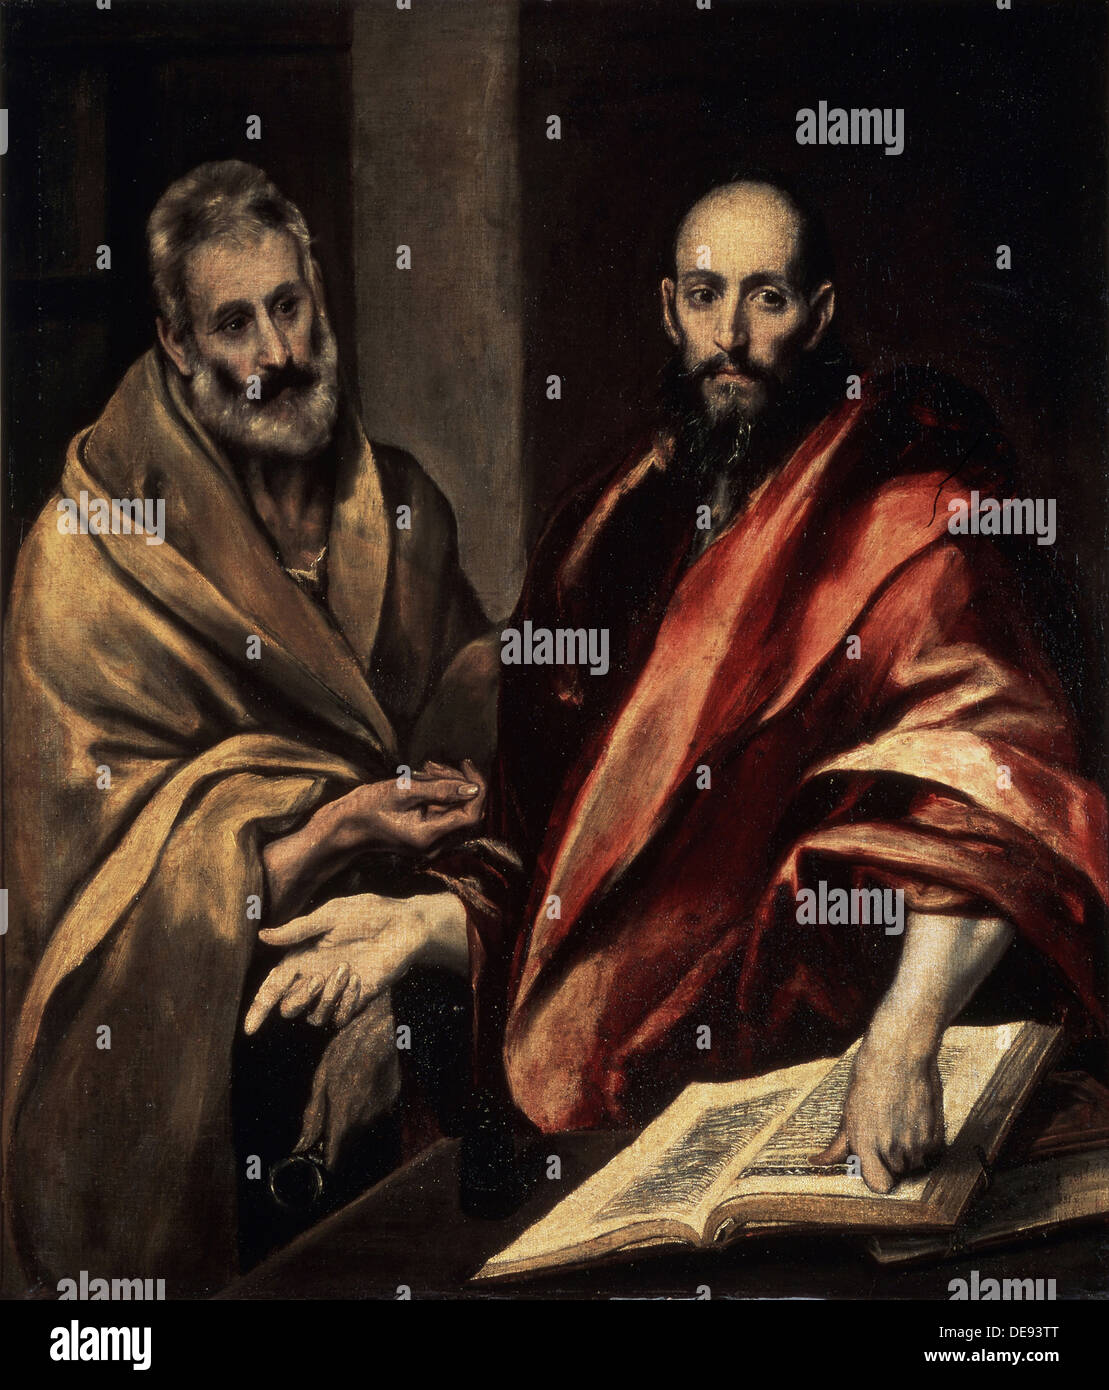 The Apostles St. Peter and St. Paul, 1587-1592. Artist: El Greco, Dominico (1541-1614) - Stock Image